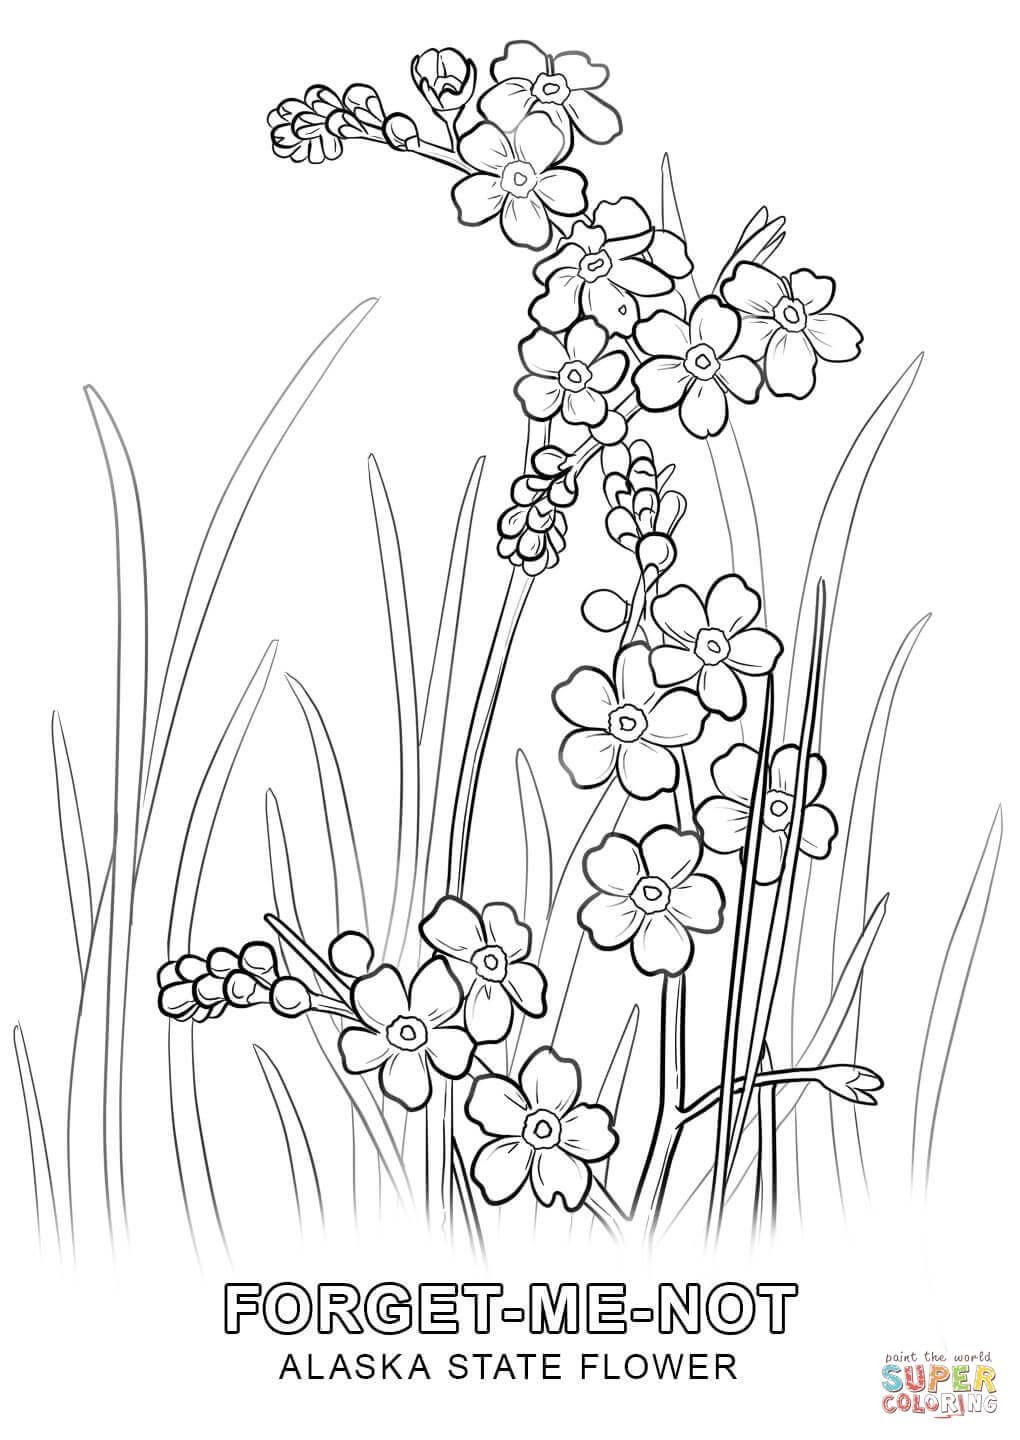 Alaska State Flower Coloring Page | Free Printable Coloring Pages - Free Printable Pictures Of Alaska